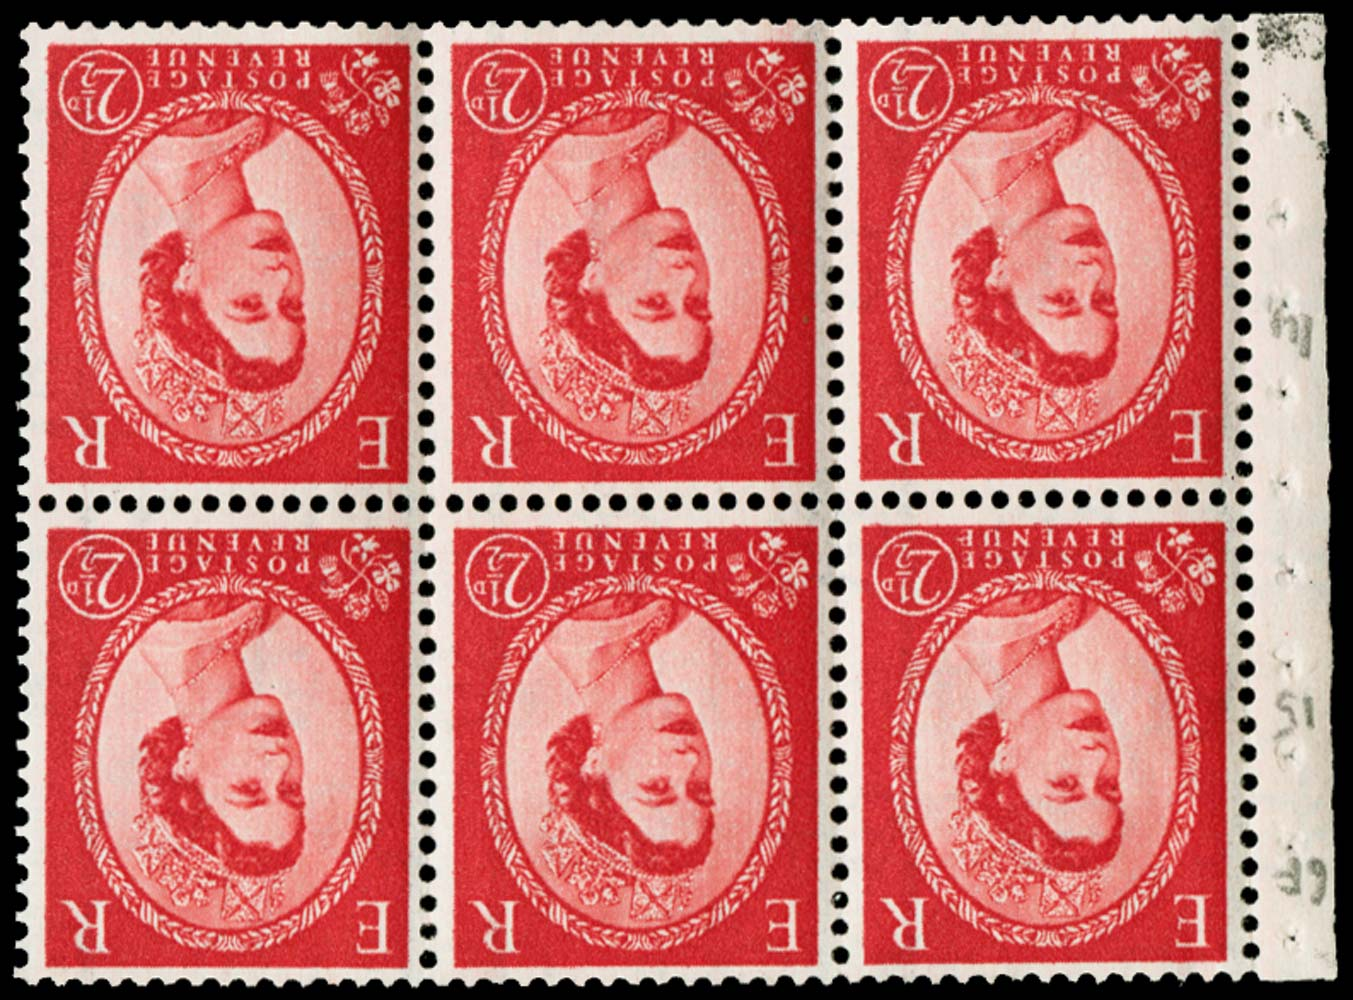 GB 1959  SG591wi Booklet pane